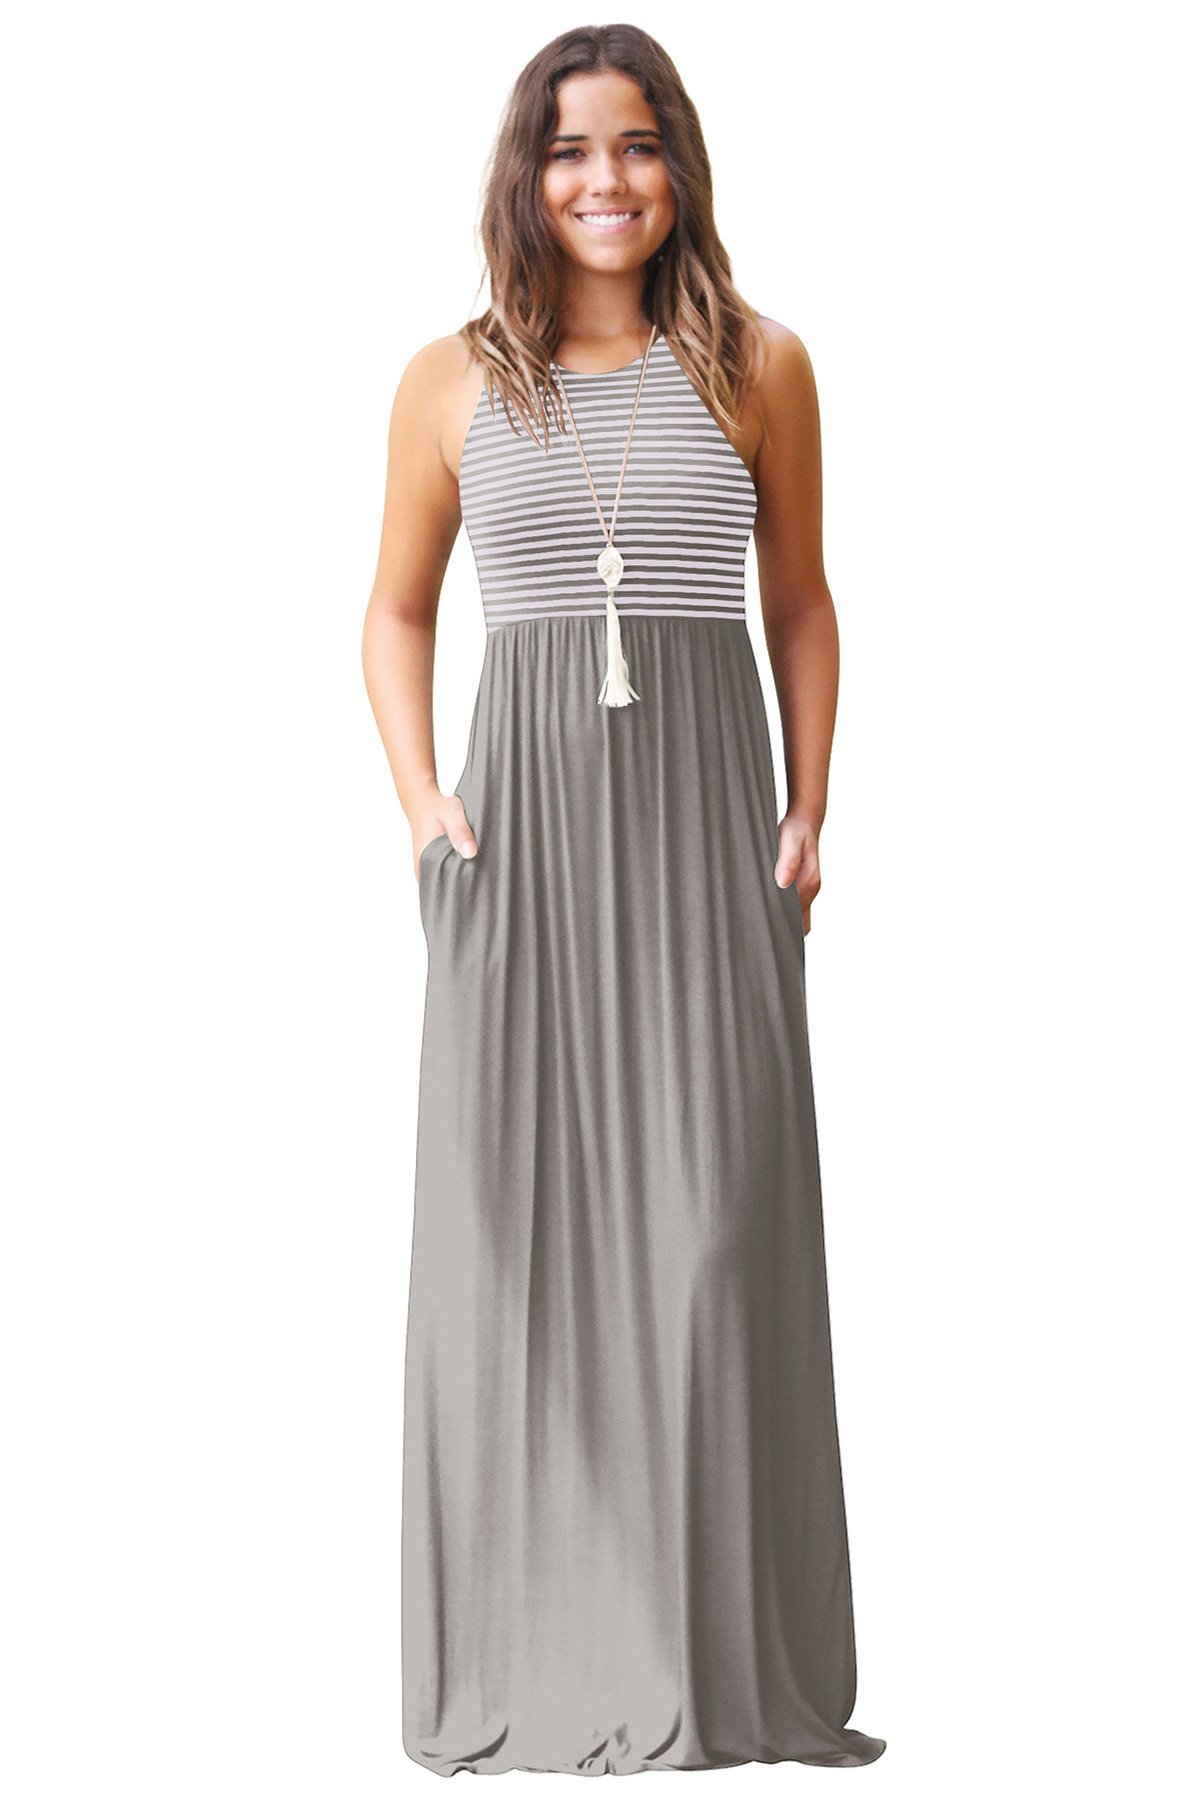 JOXJOZ Women's Sleeveless Racerback Loose Striped Maxi Dresses Casual Long Party Dresses with Pockets (Grey, L) by JOXJOZ